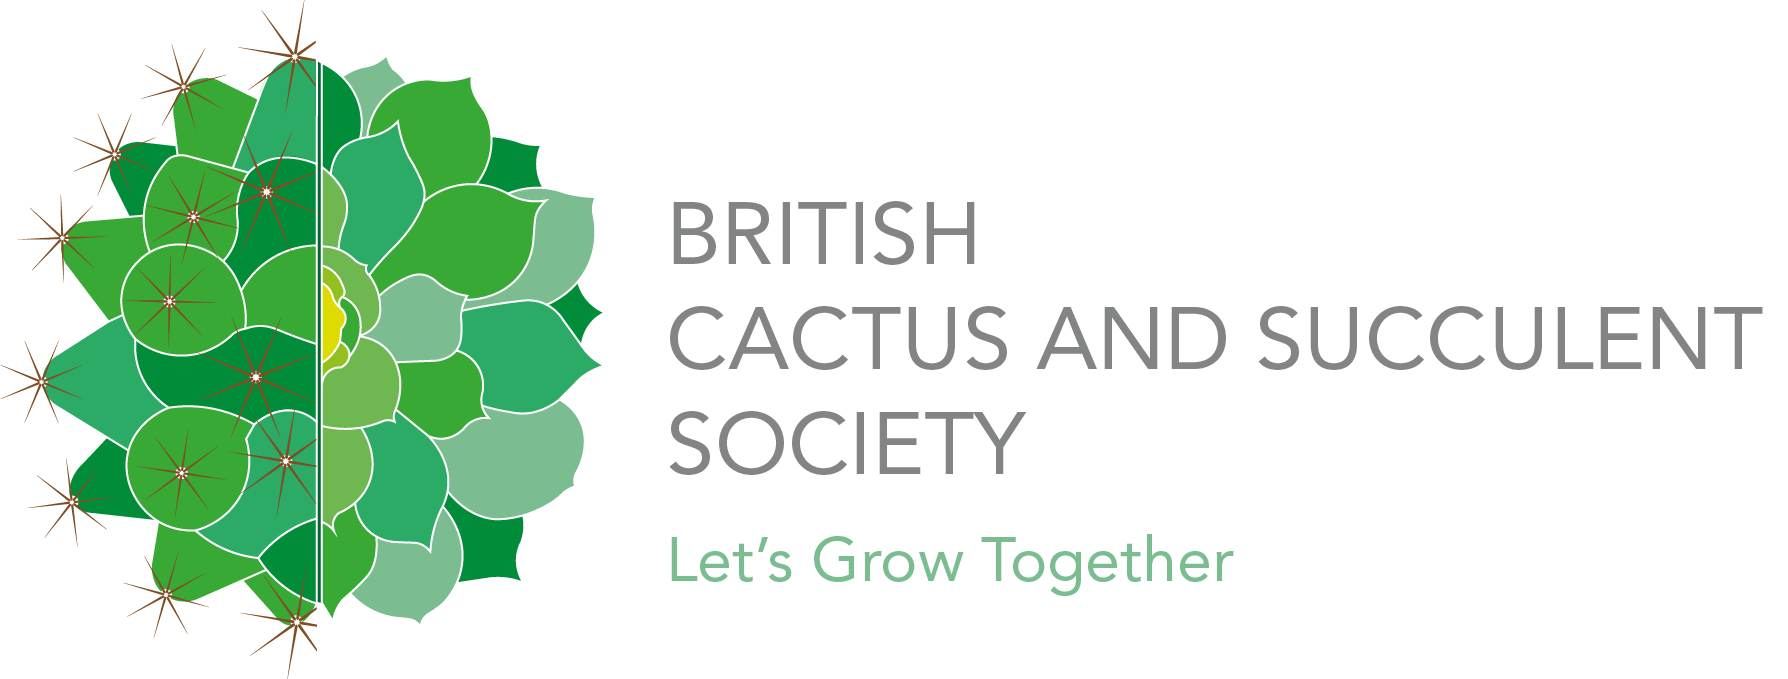 British Cactus and Succulent Society Grampian Branch